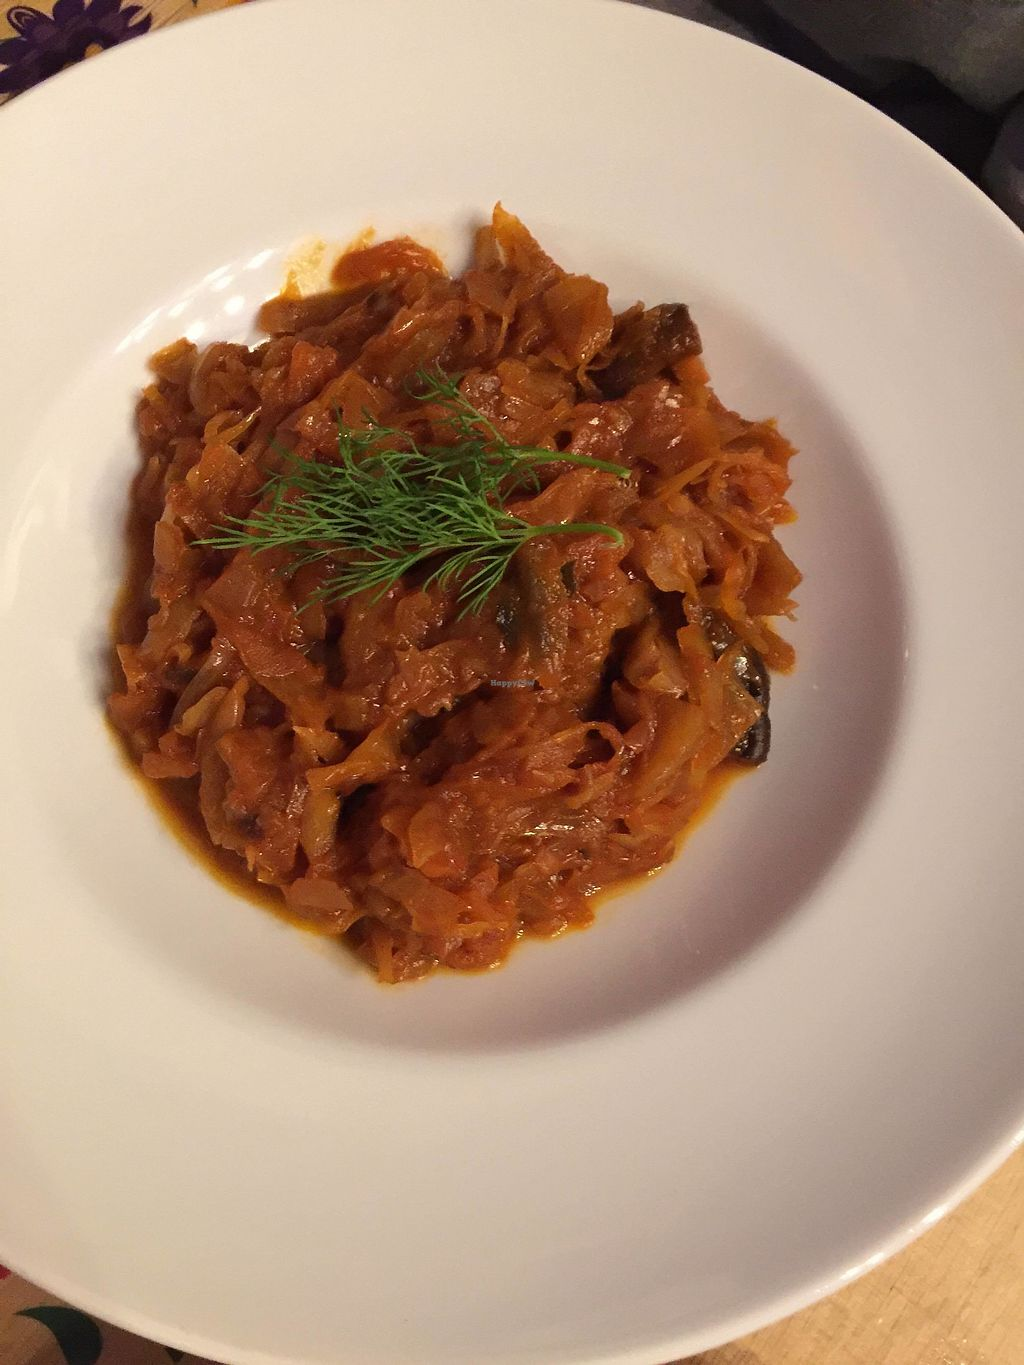 """Photo of Vege Bistro - Polish Vegan Food  by <a href=""""/members/profile/FernandoMoreira"""">FernandoMoreira</a> <br/>cabbage stew <br/> February 20, 2018  - <a href='/contact/abuse/image/58057/361786'>Report</a>"""